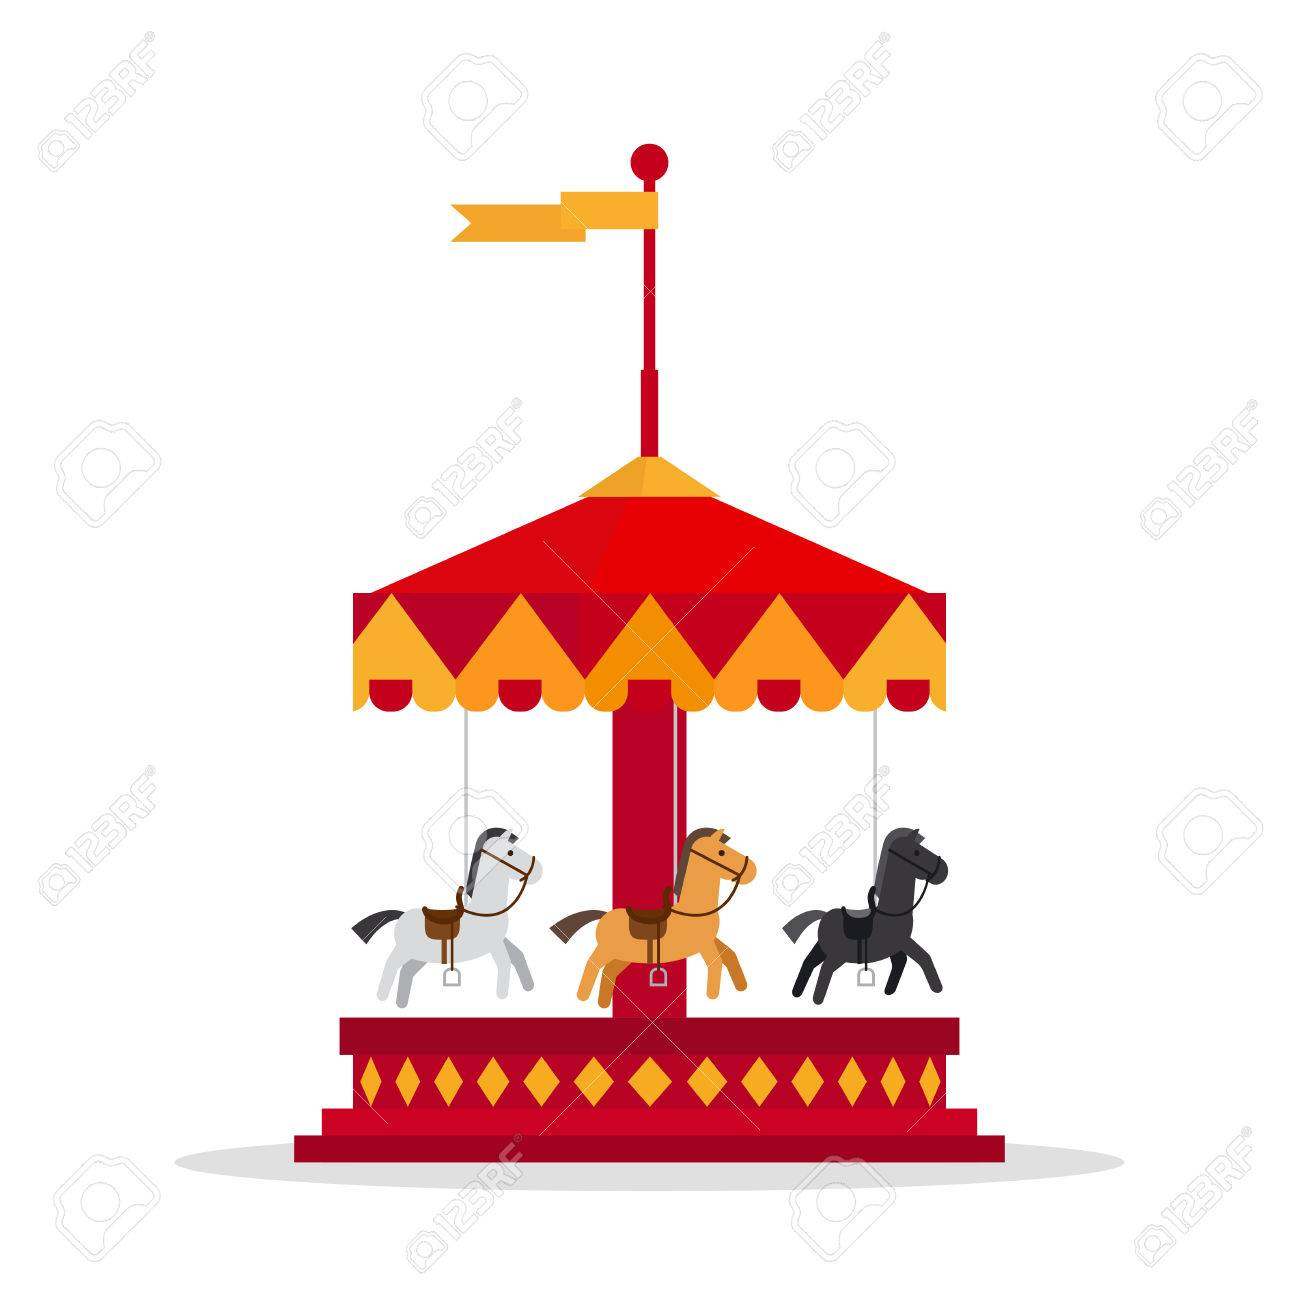 kids carnival carousel in flat style merry go round vector